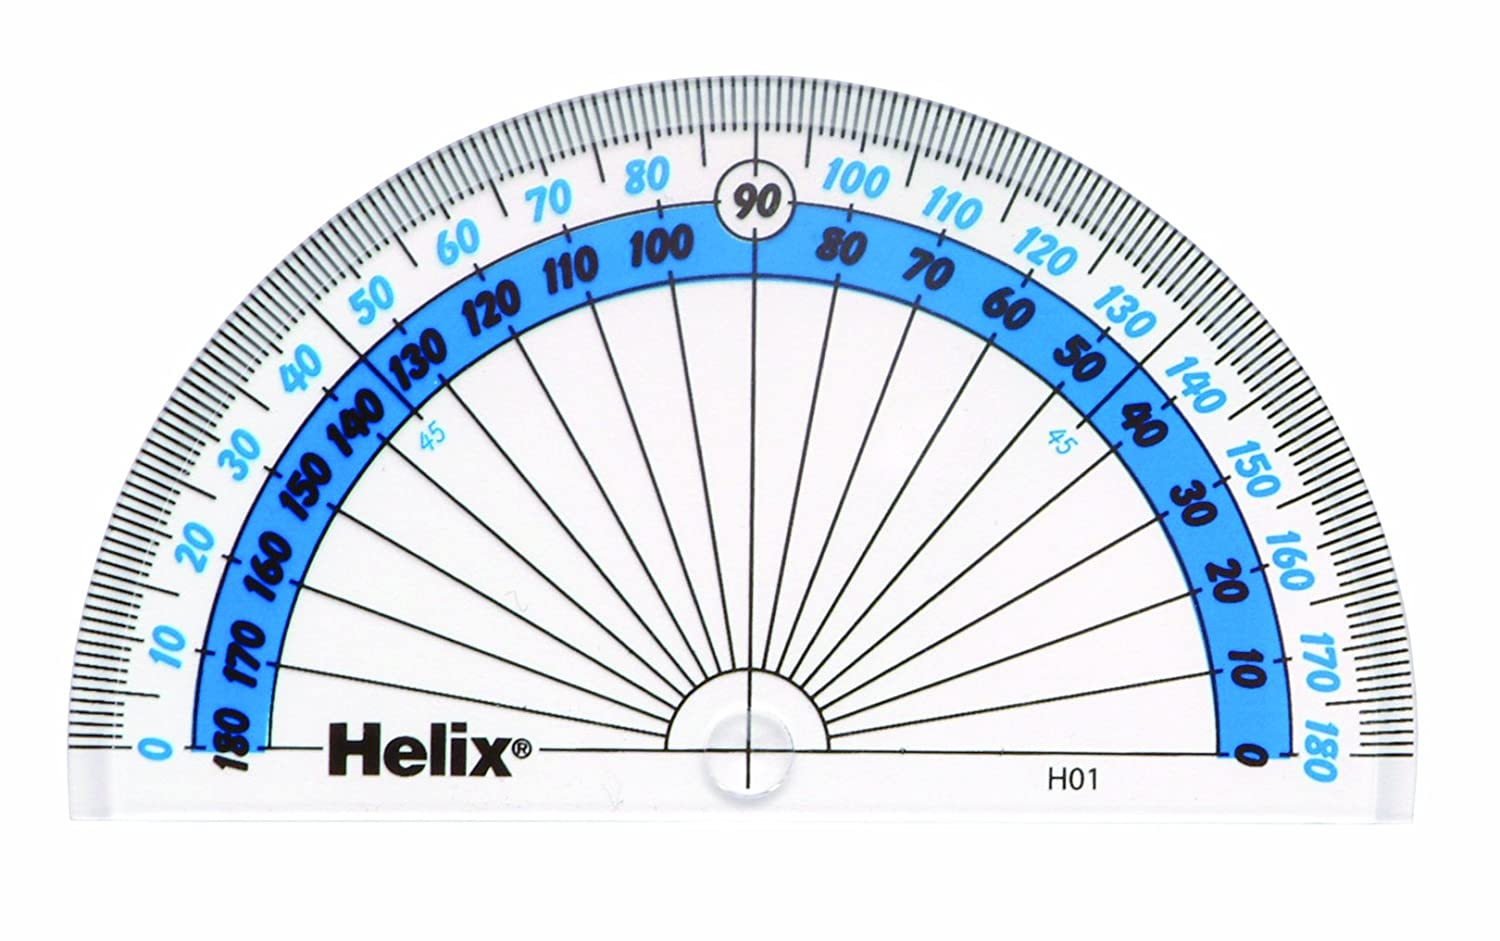 worksheet Protractor Image helix h01040 10cm 180 degree protractor amazon co uk office products